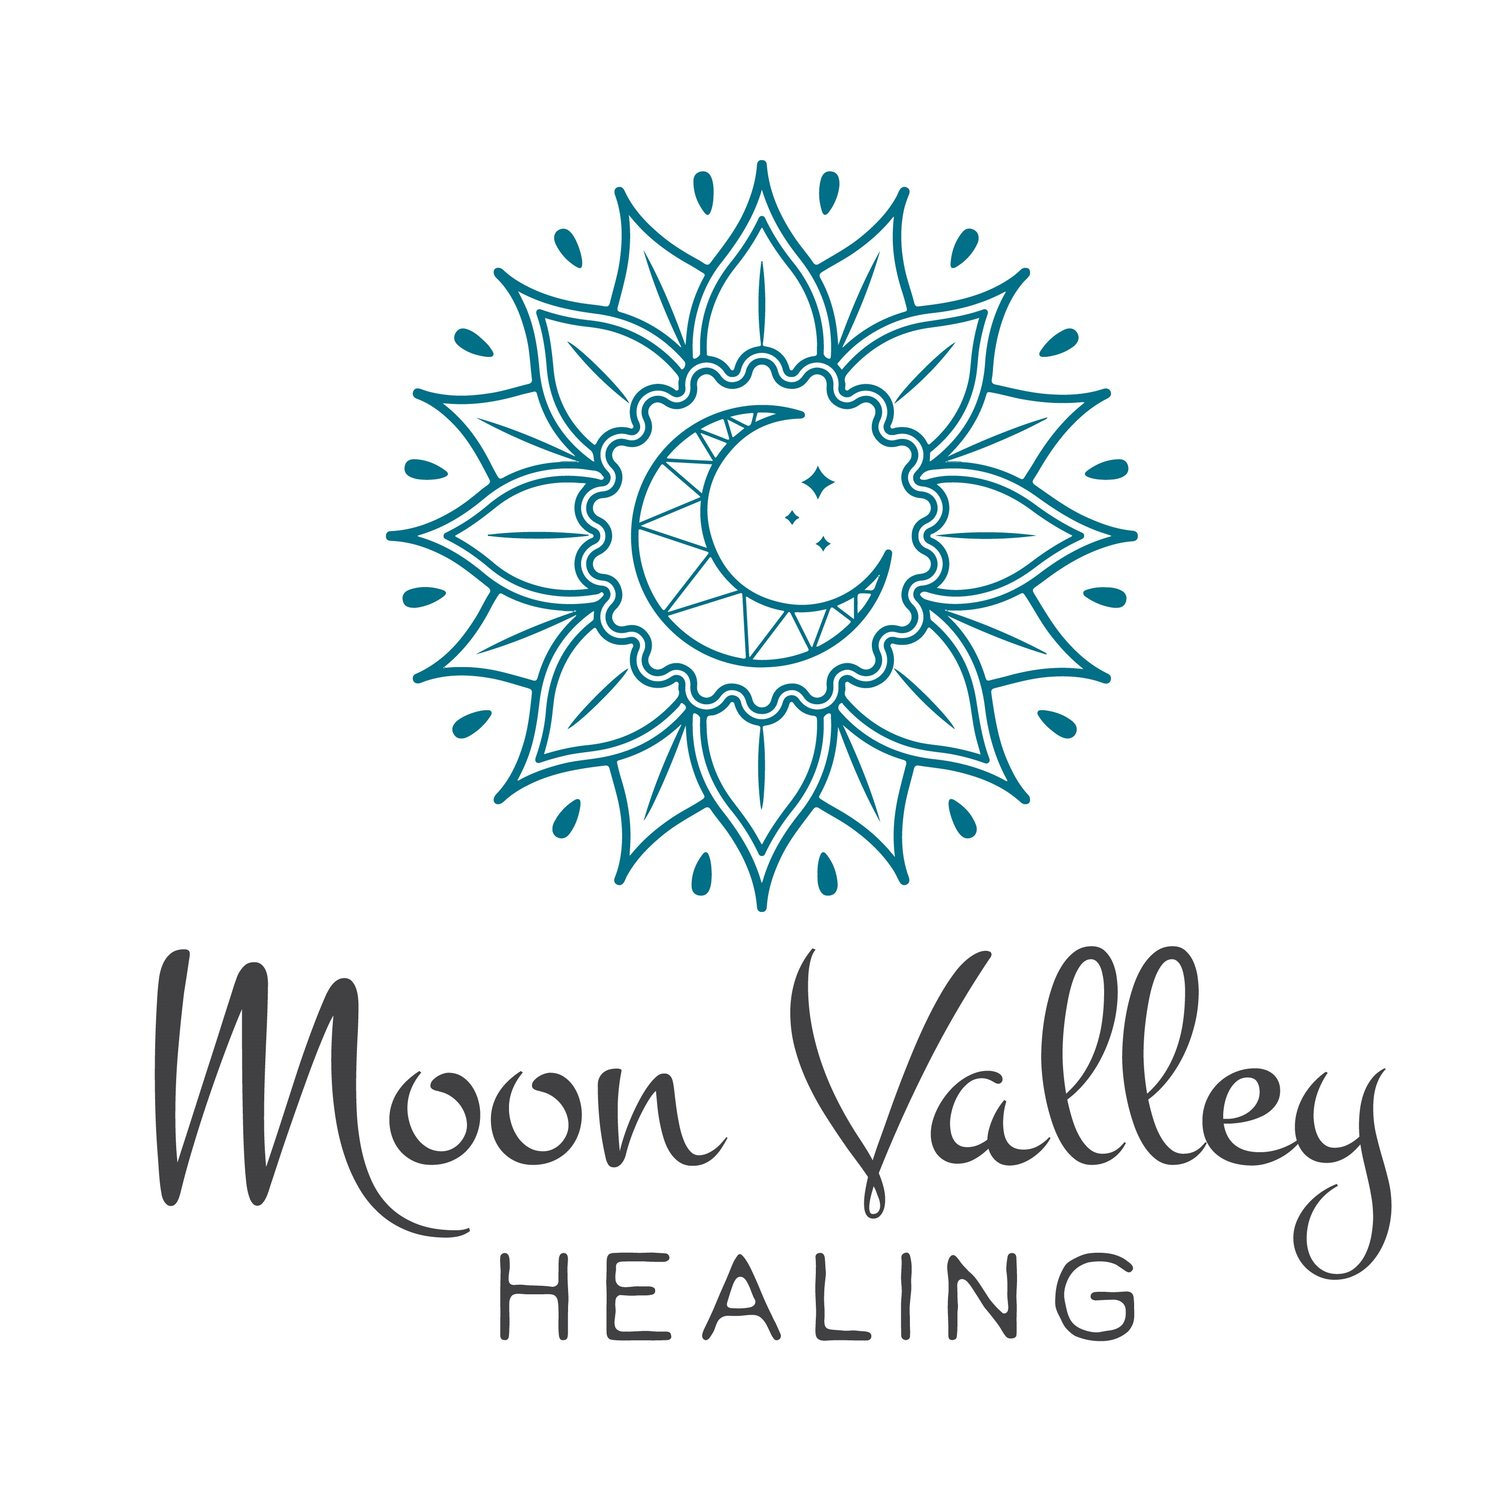 Moon Valley Healing